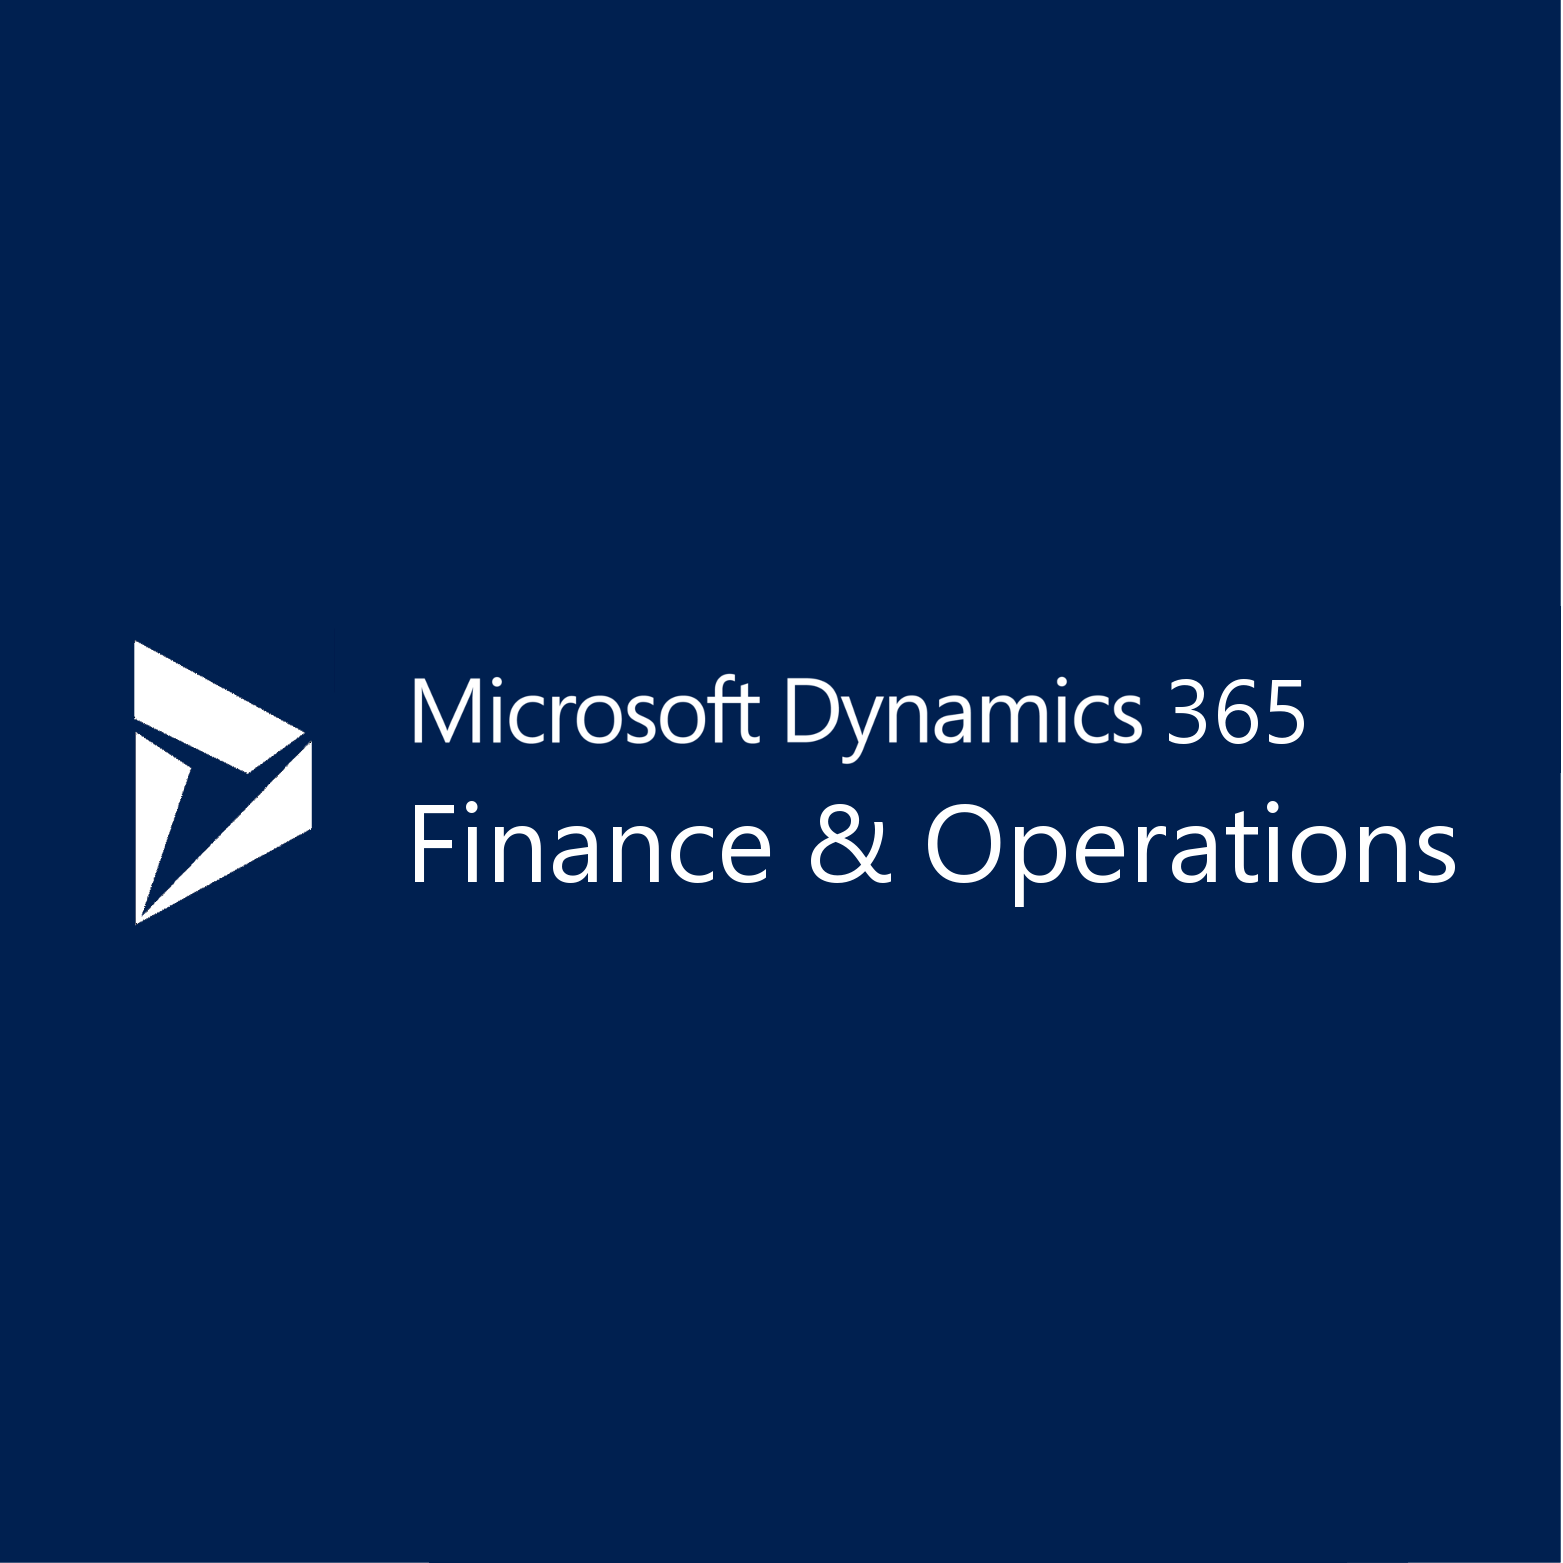 Dynamics 365 Finance & Operations User License